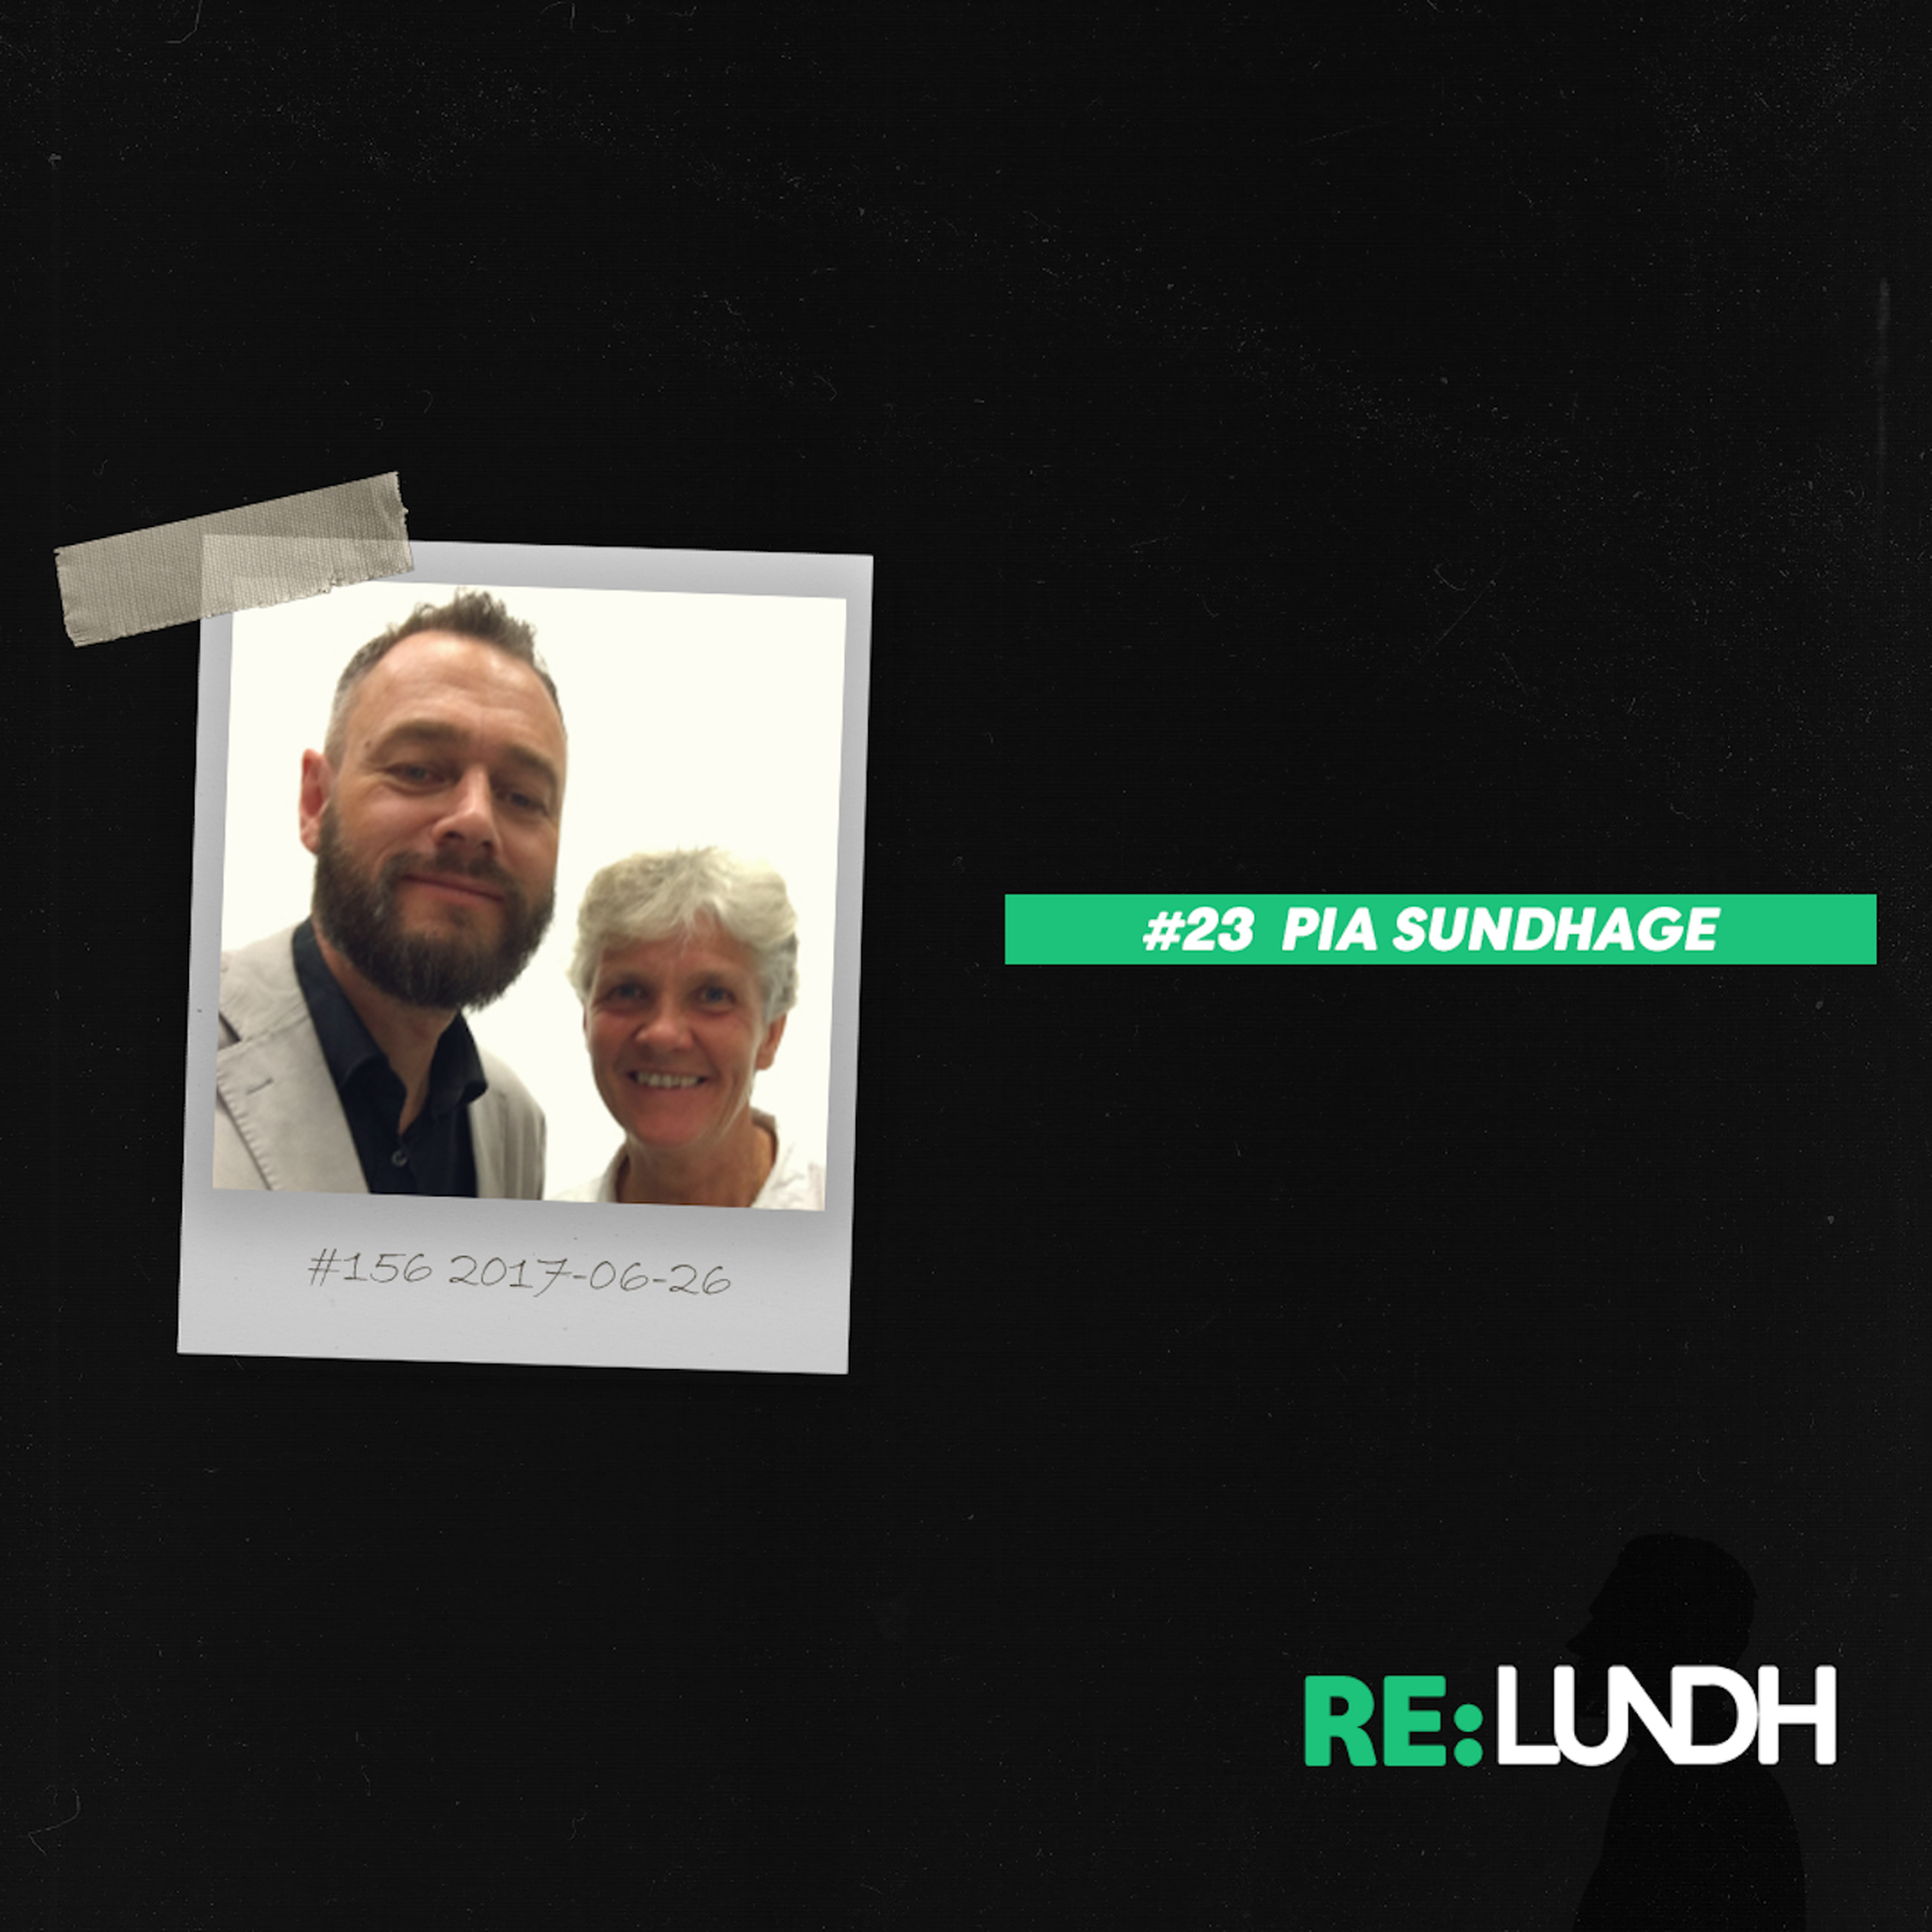 23 Re:Lundh – Pia Sundhage